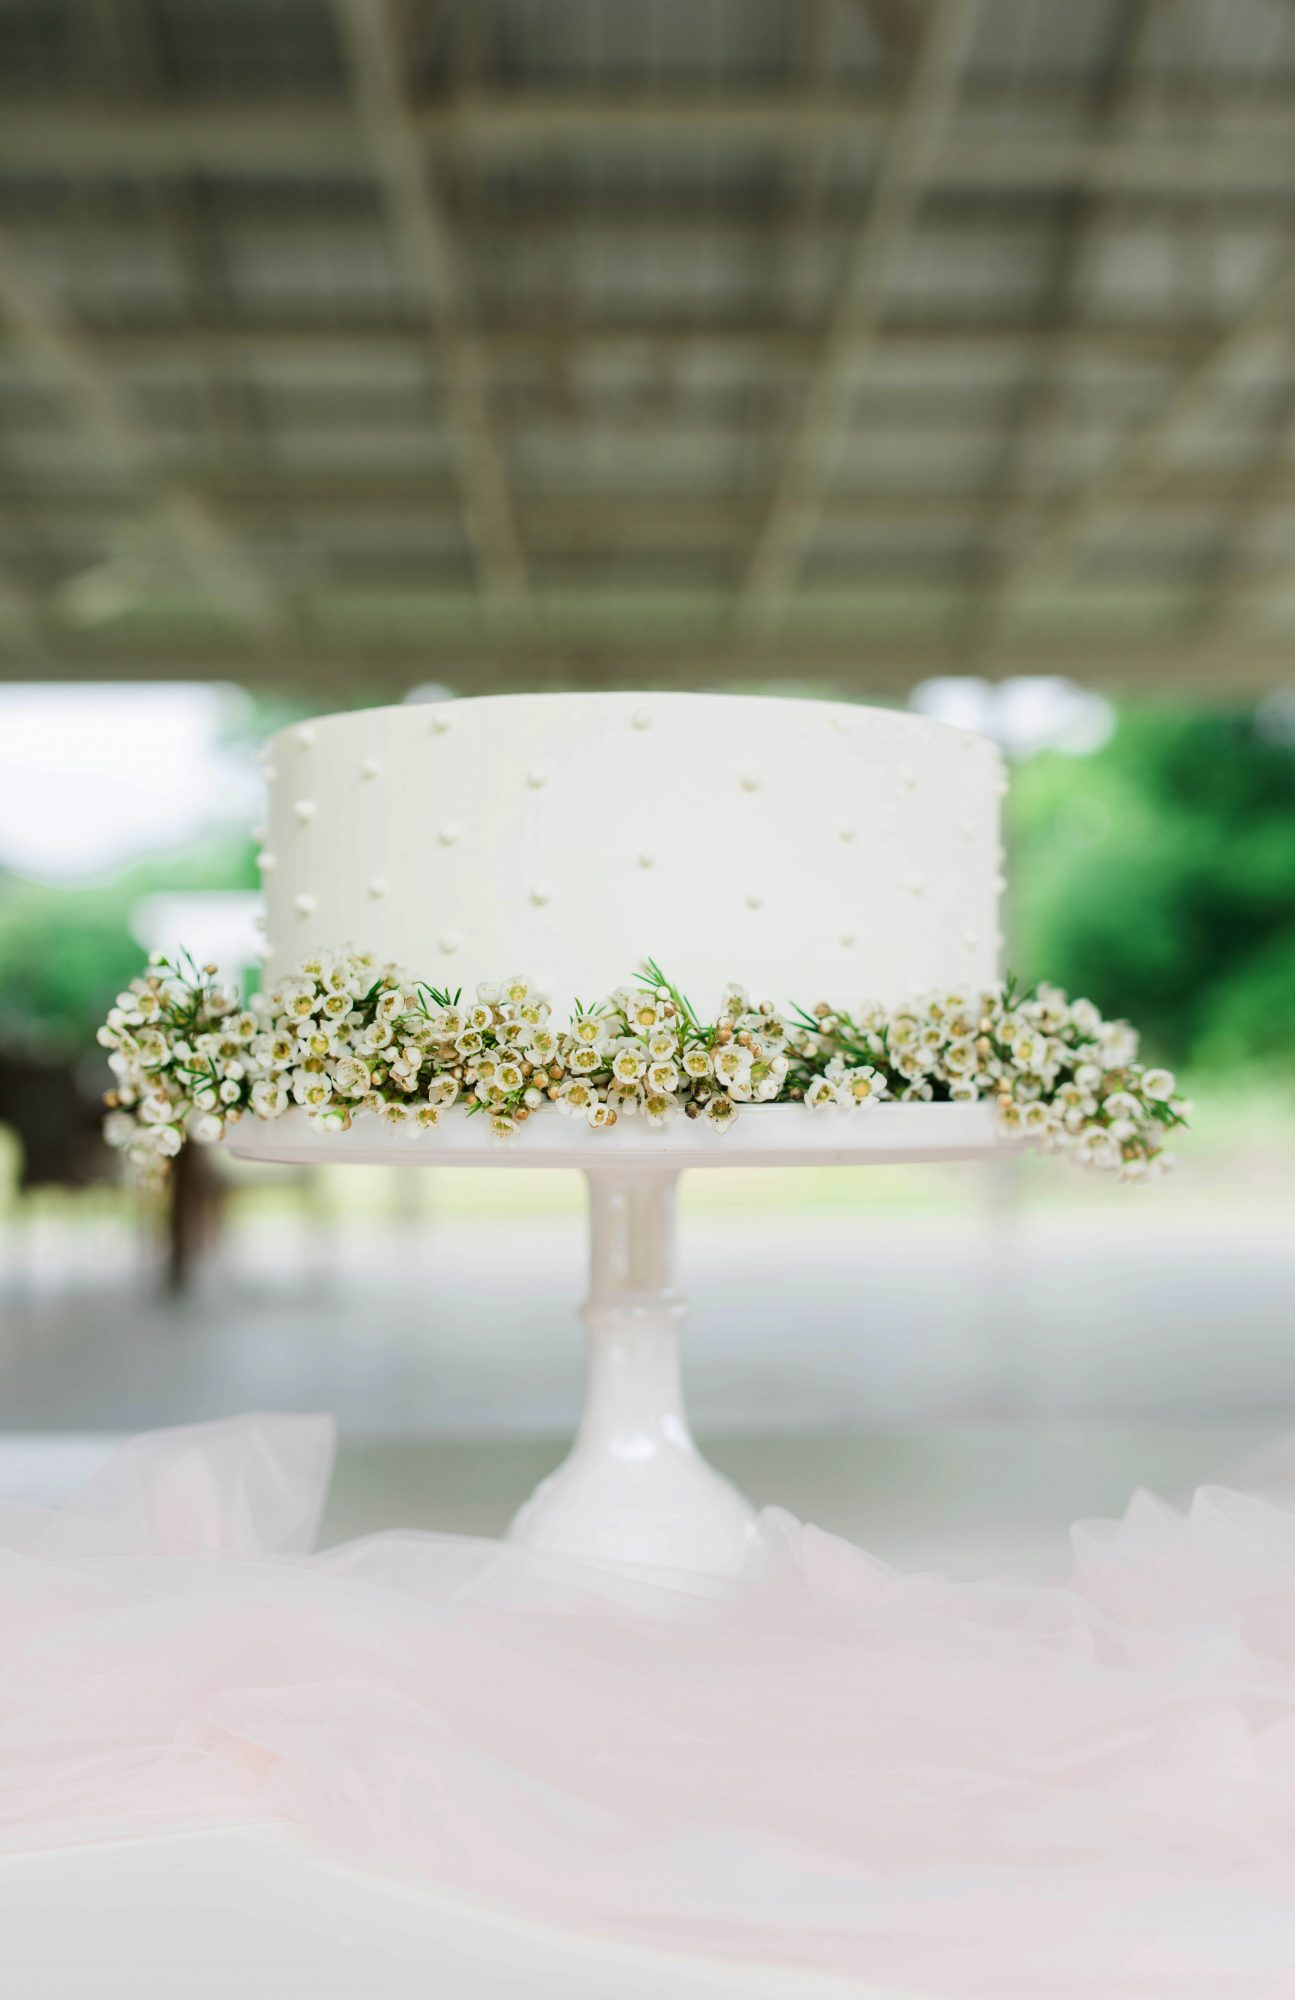 floral wedding cakes kaley elaine outdoors simple white greenery